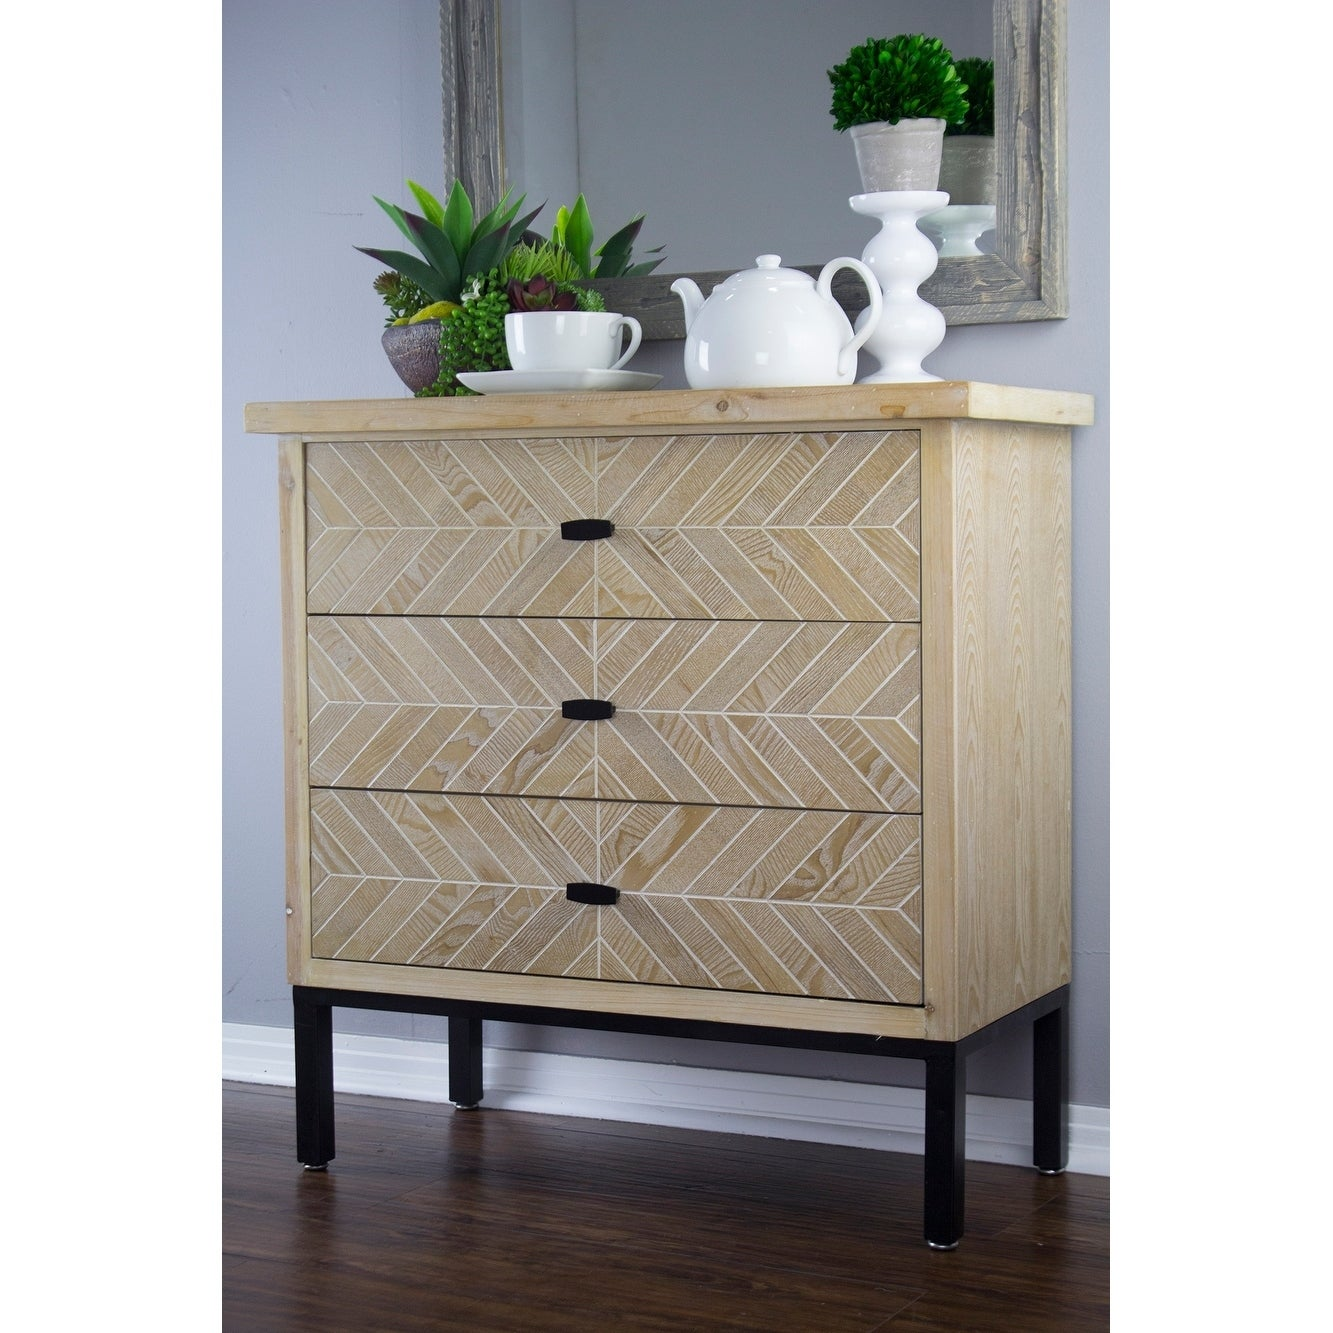 urban accents furniture. Heather Ann Creations Urban Collection 3-Drawer Parquet Accent Cabinet - Free Shipping Today Overstock 23602996 Accents Furniture R